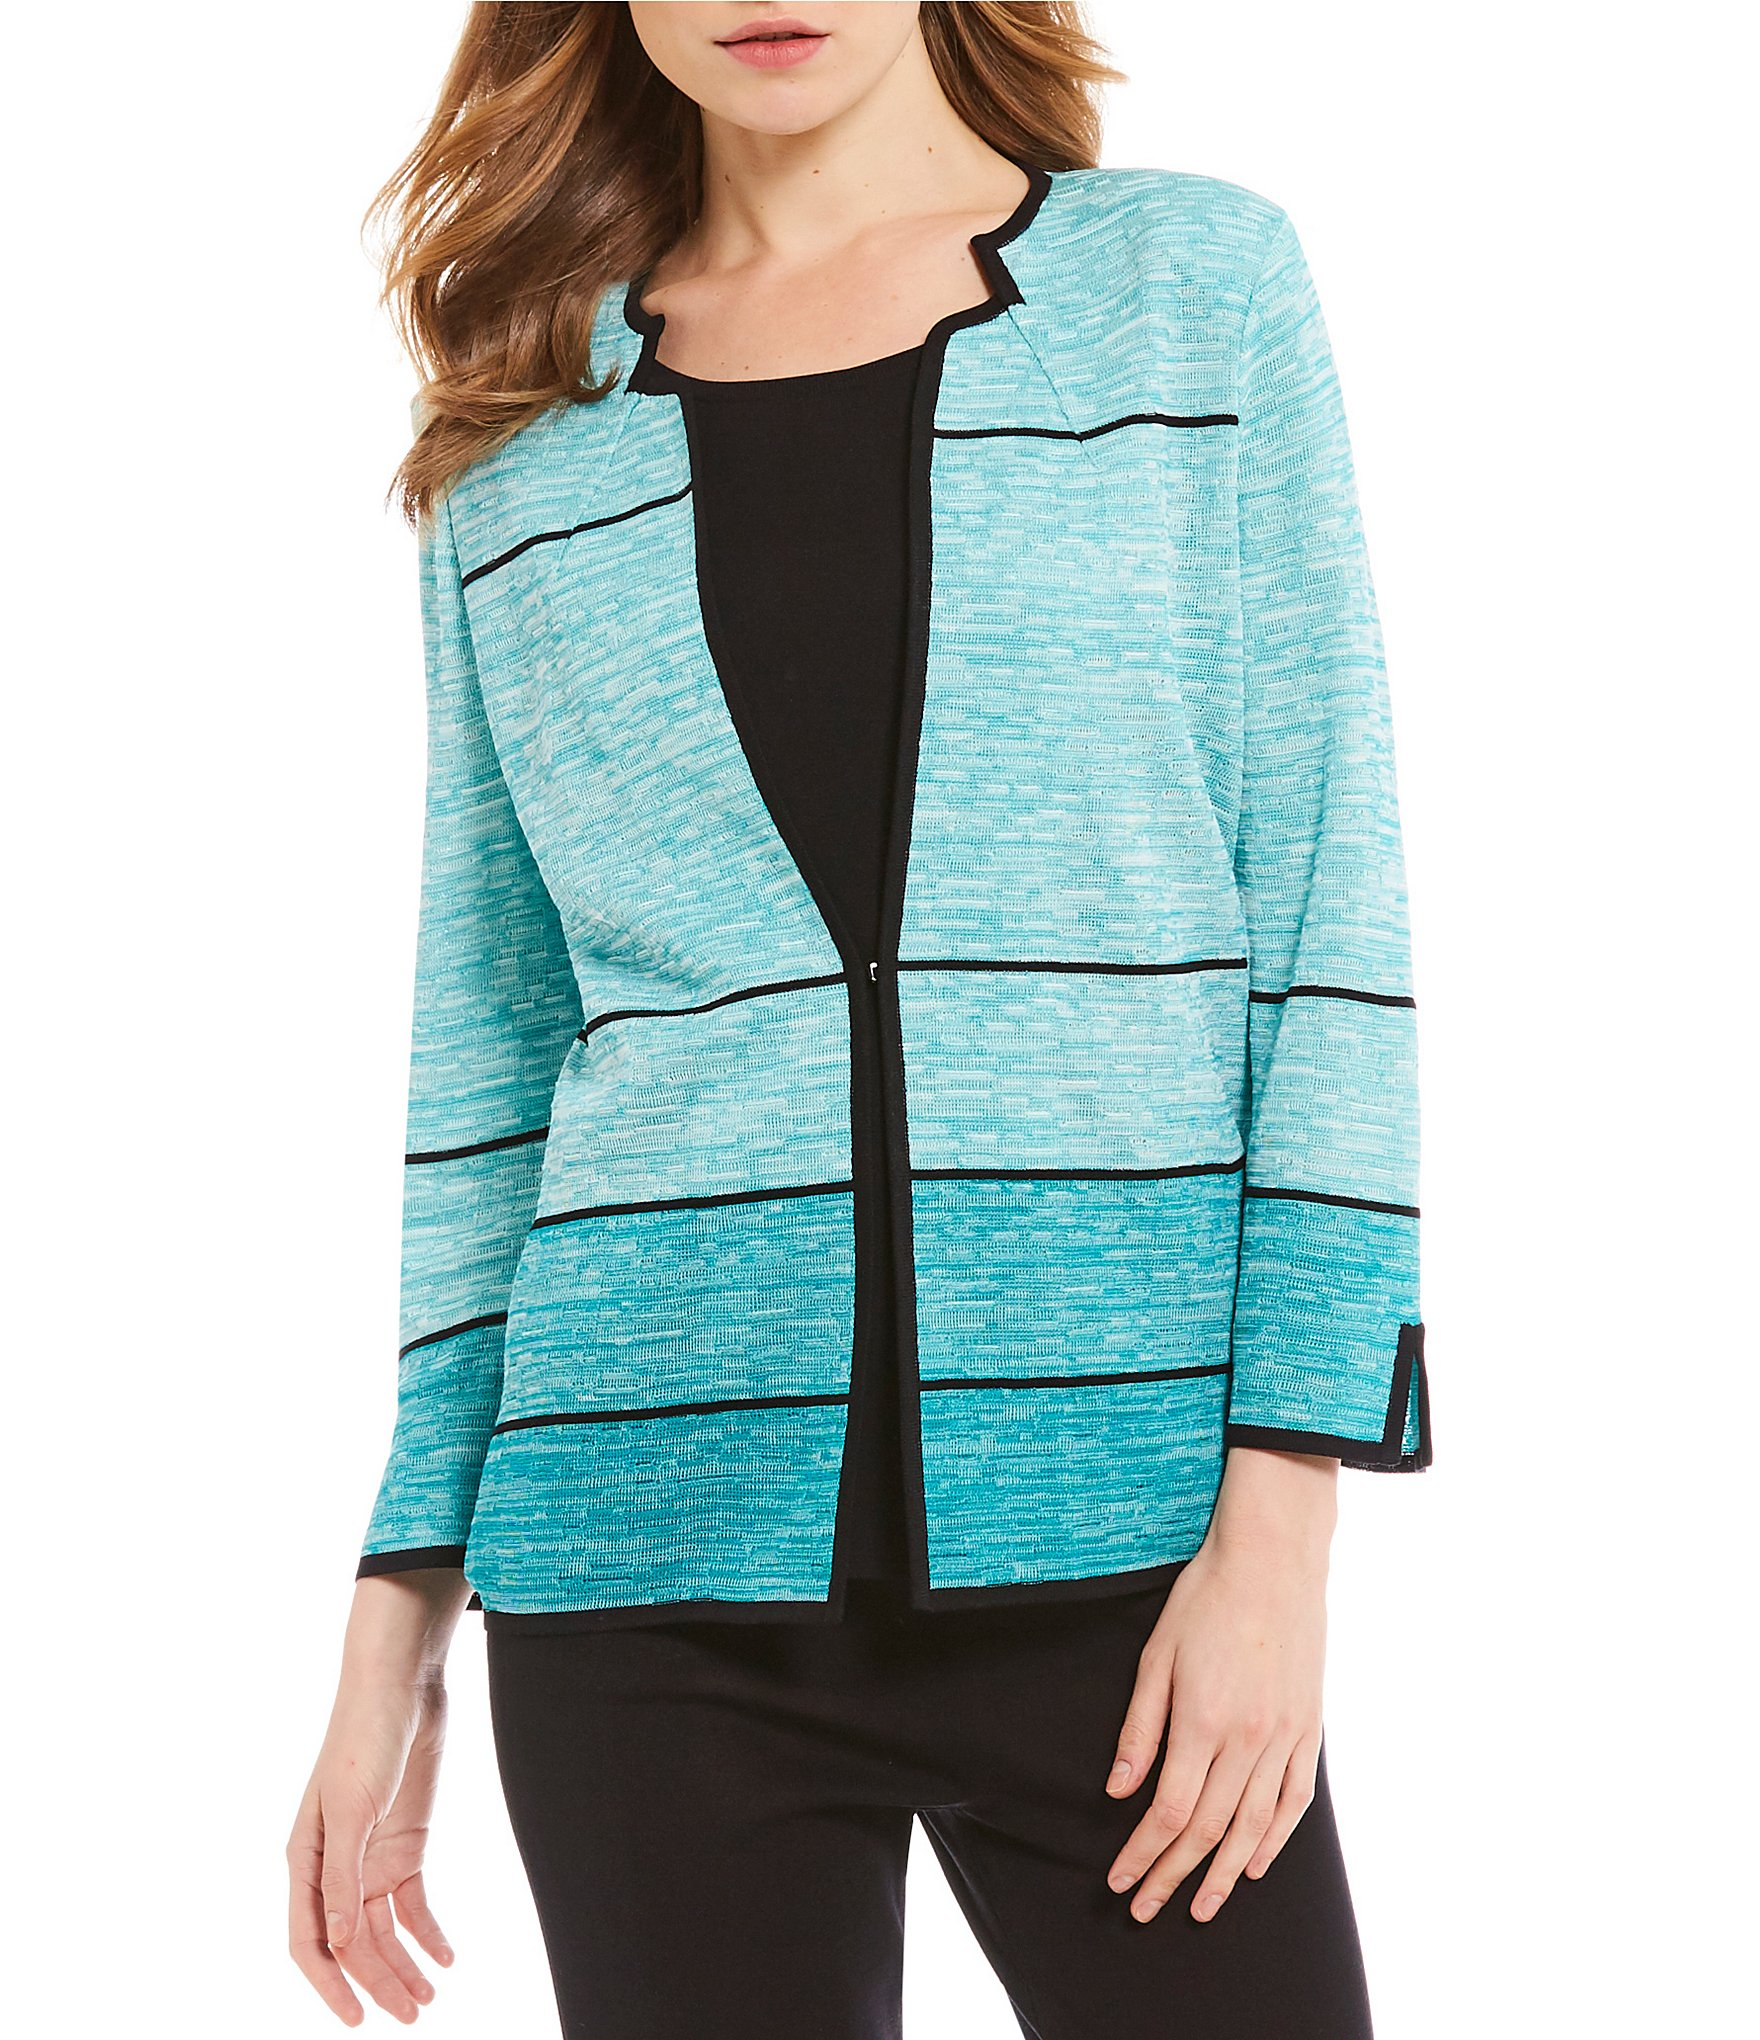 Misook's designer knitwear sales has styles you will love, at prices you will love more. Machine washable knits made for easy care.